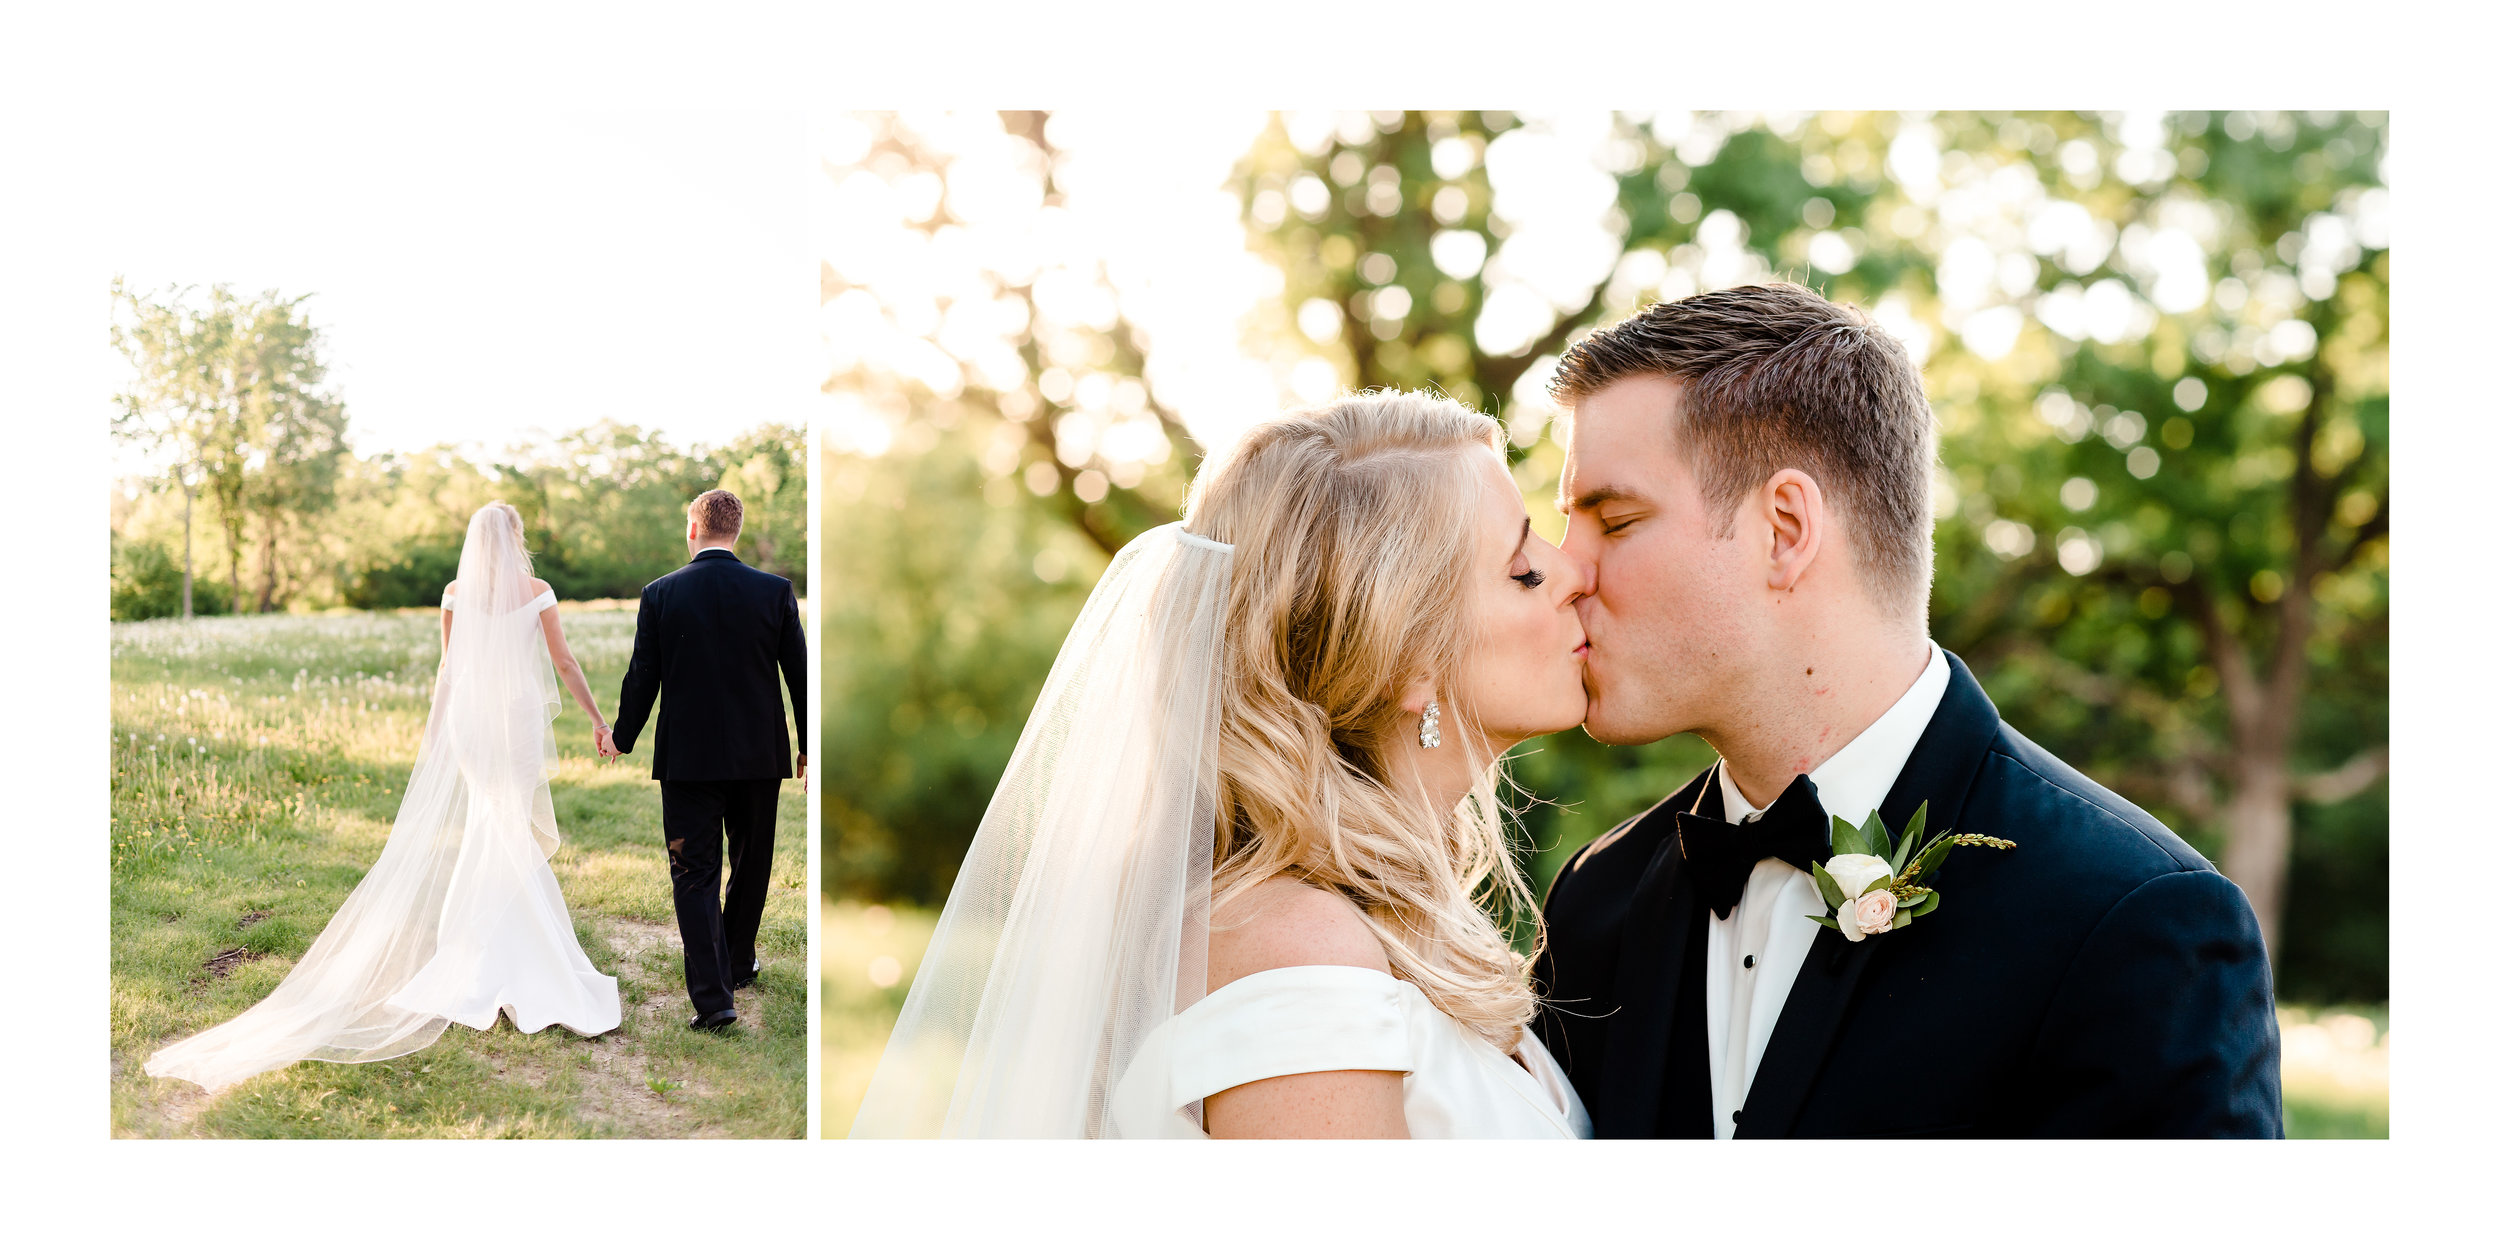 Amanda + Justin - Wedding Album_30.jpg